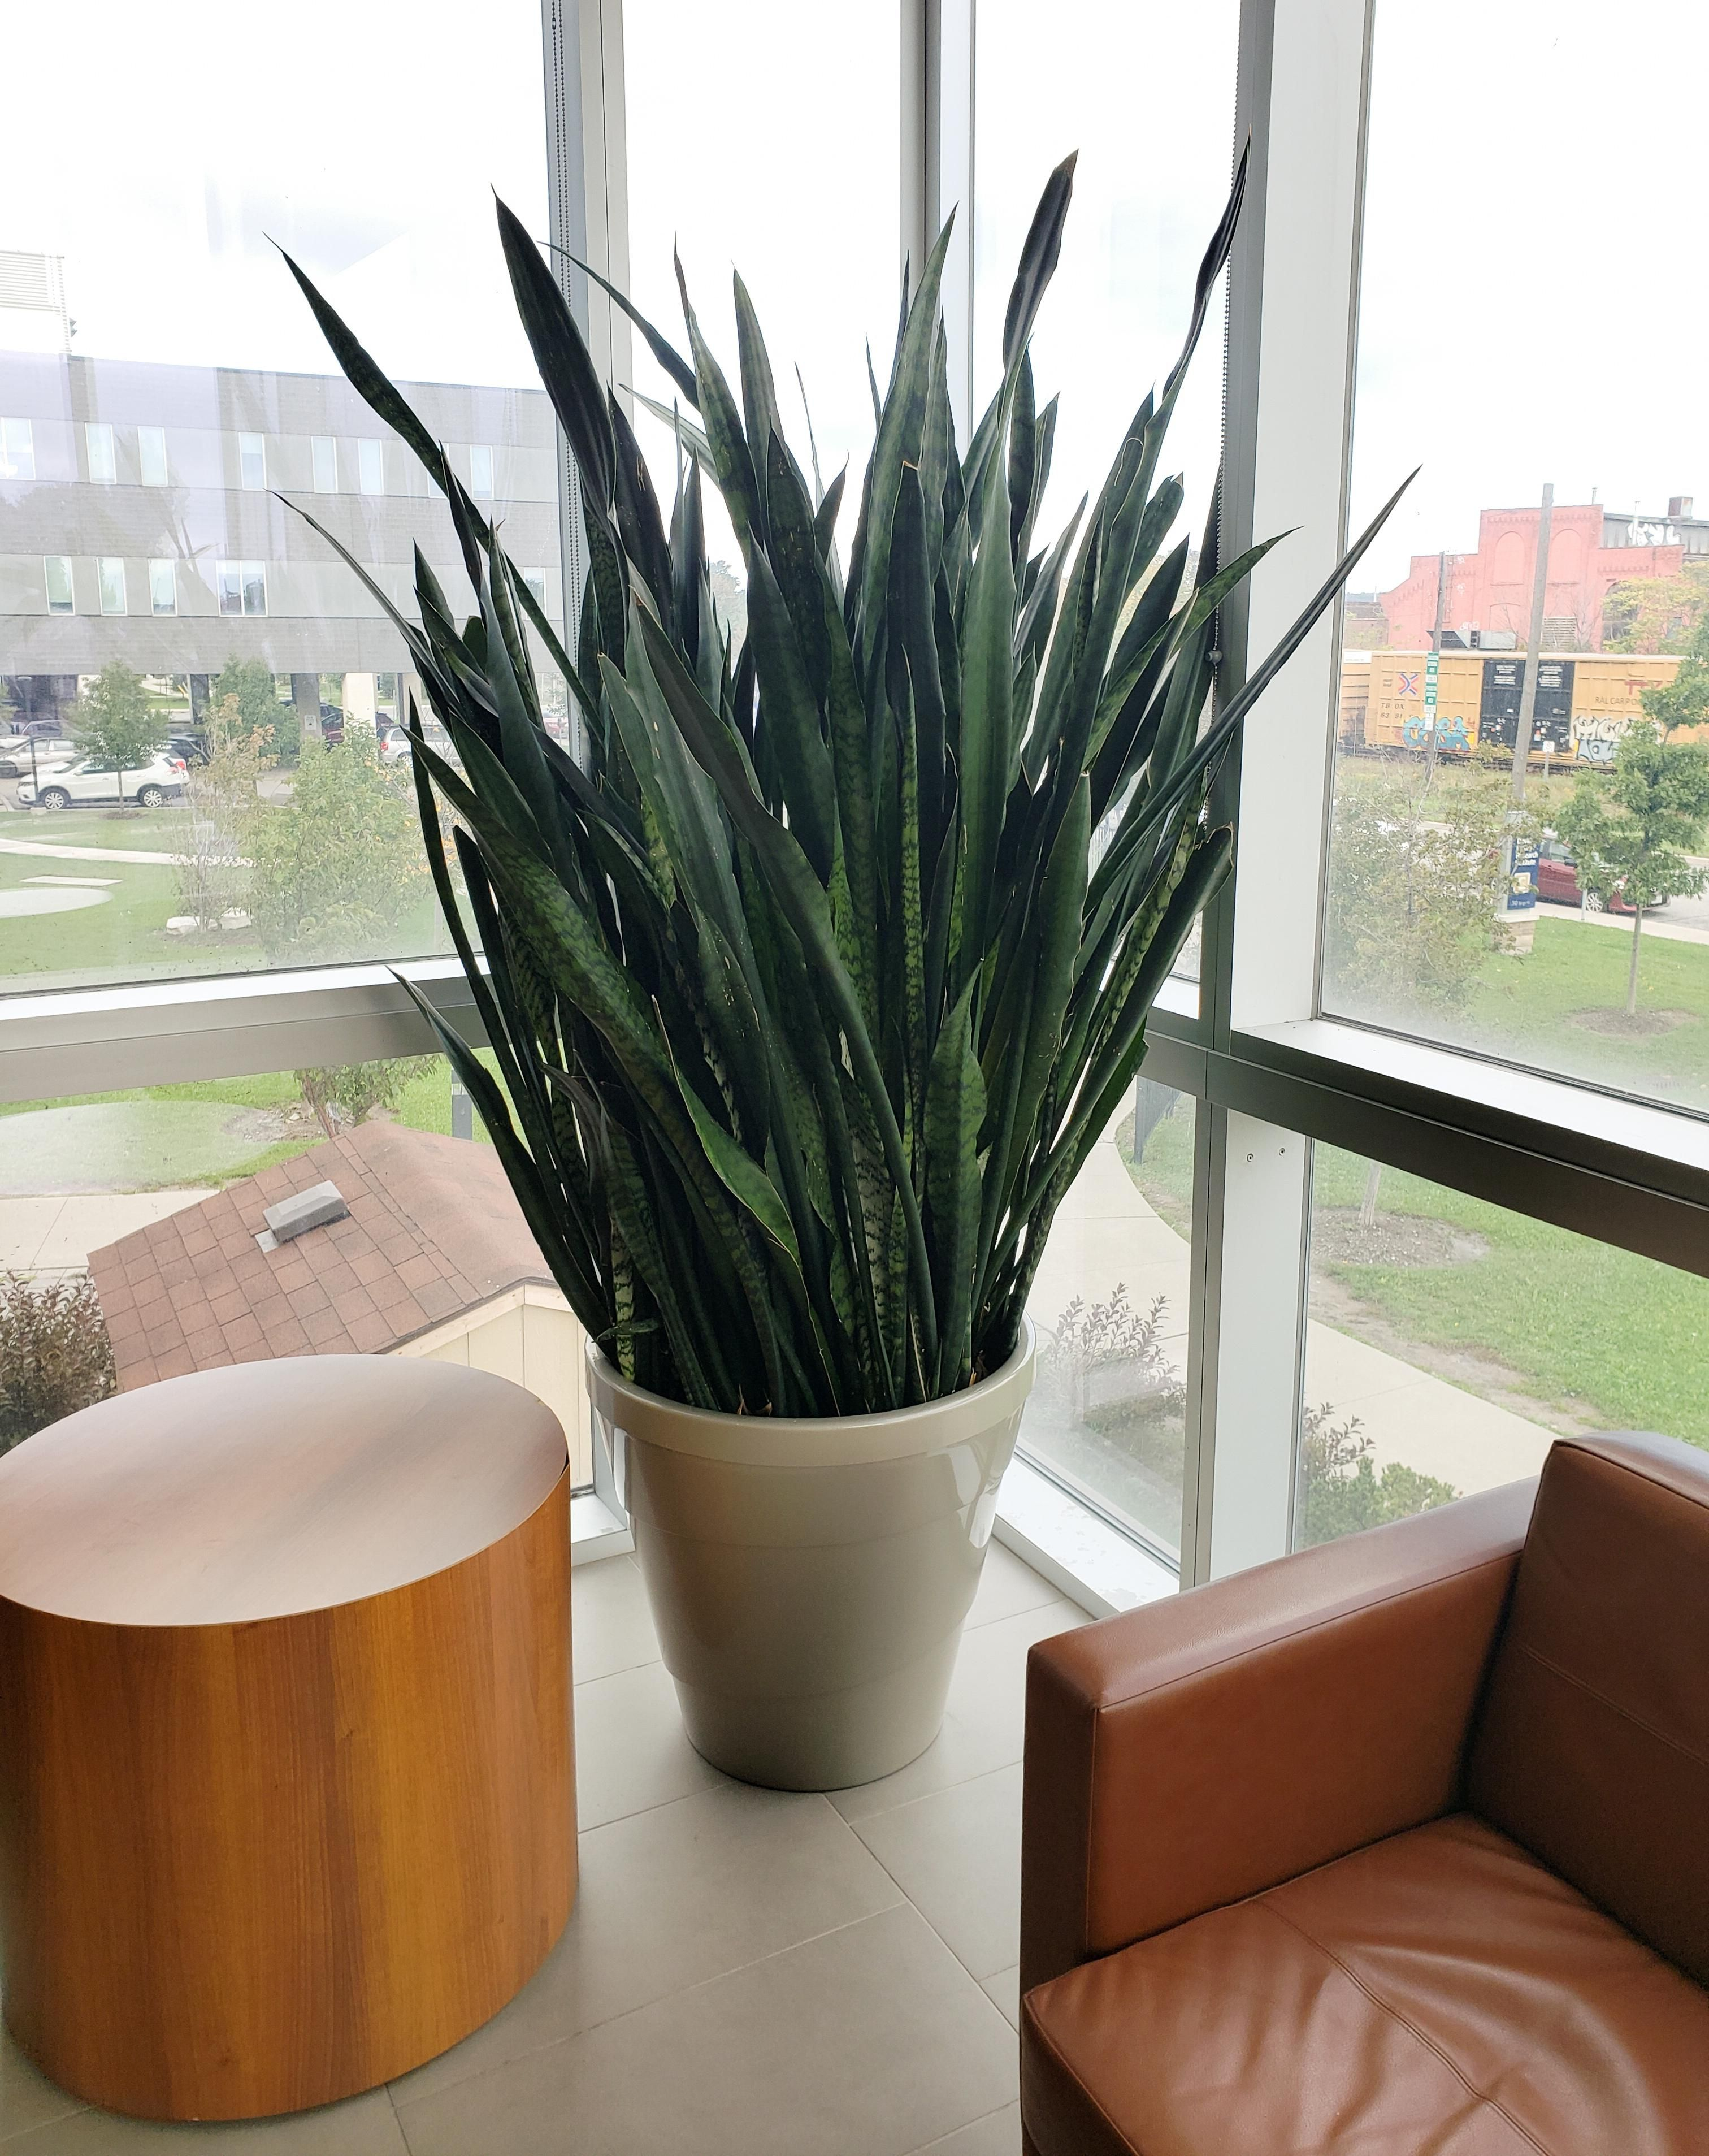 Giant snake plant that lives in my office inspirational indoor